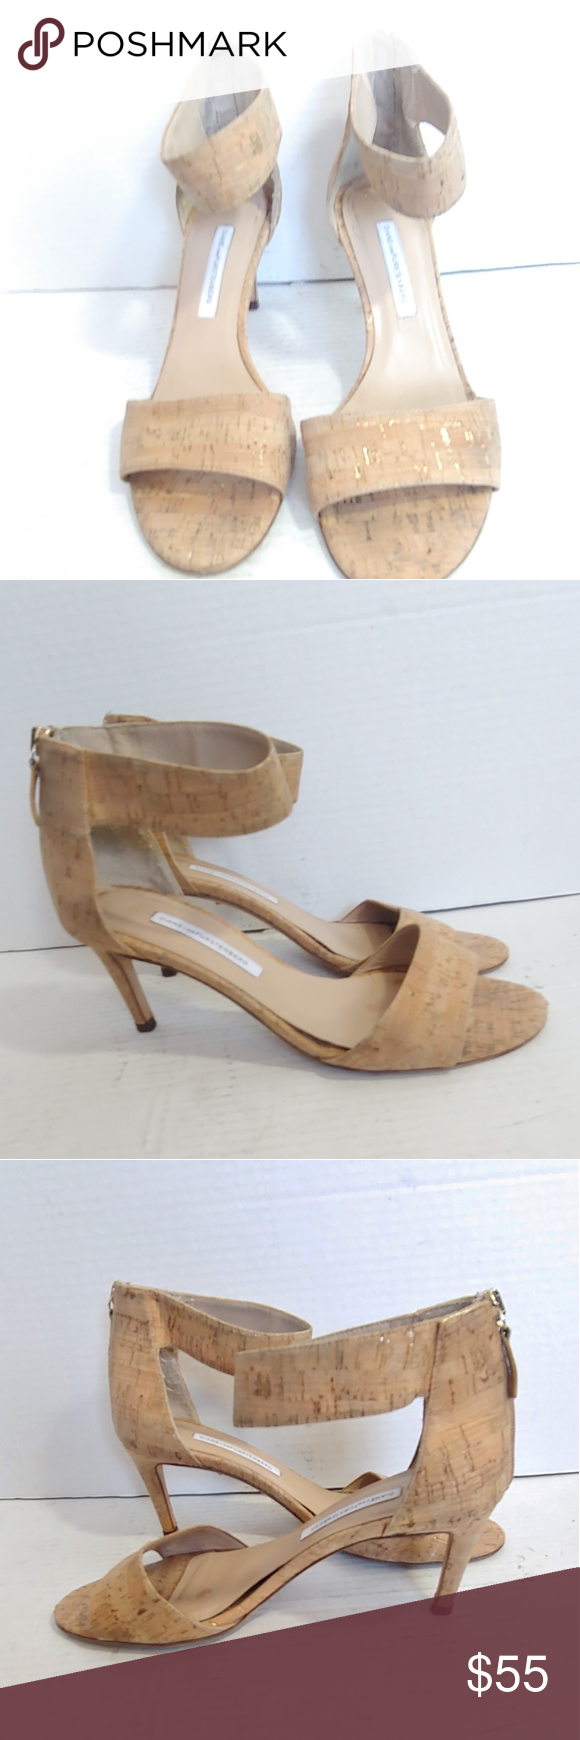 DVF cork kitten heel sandals Diane Von Furstenberg cork kitten heels in good pre…